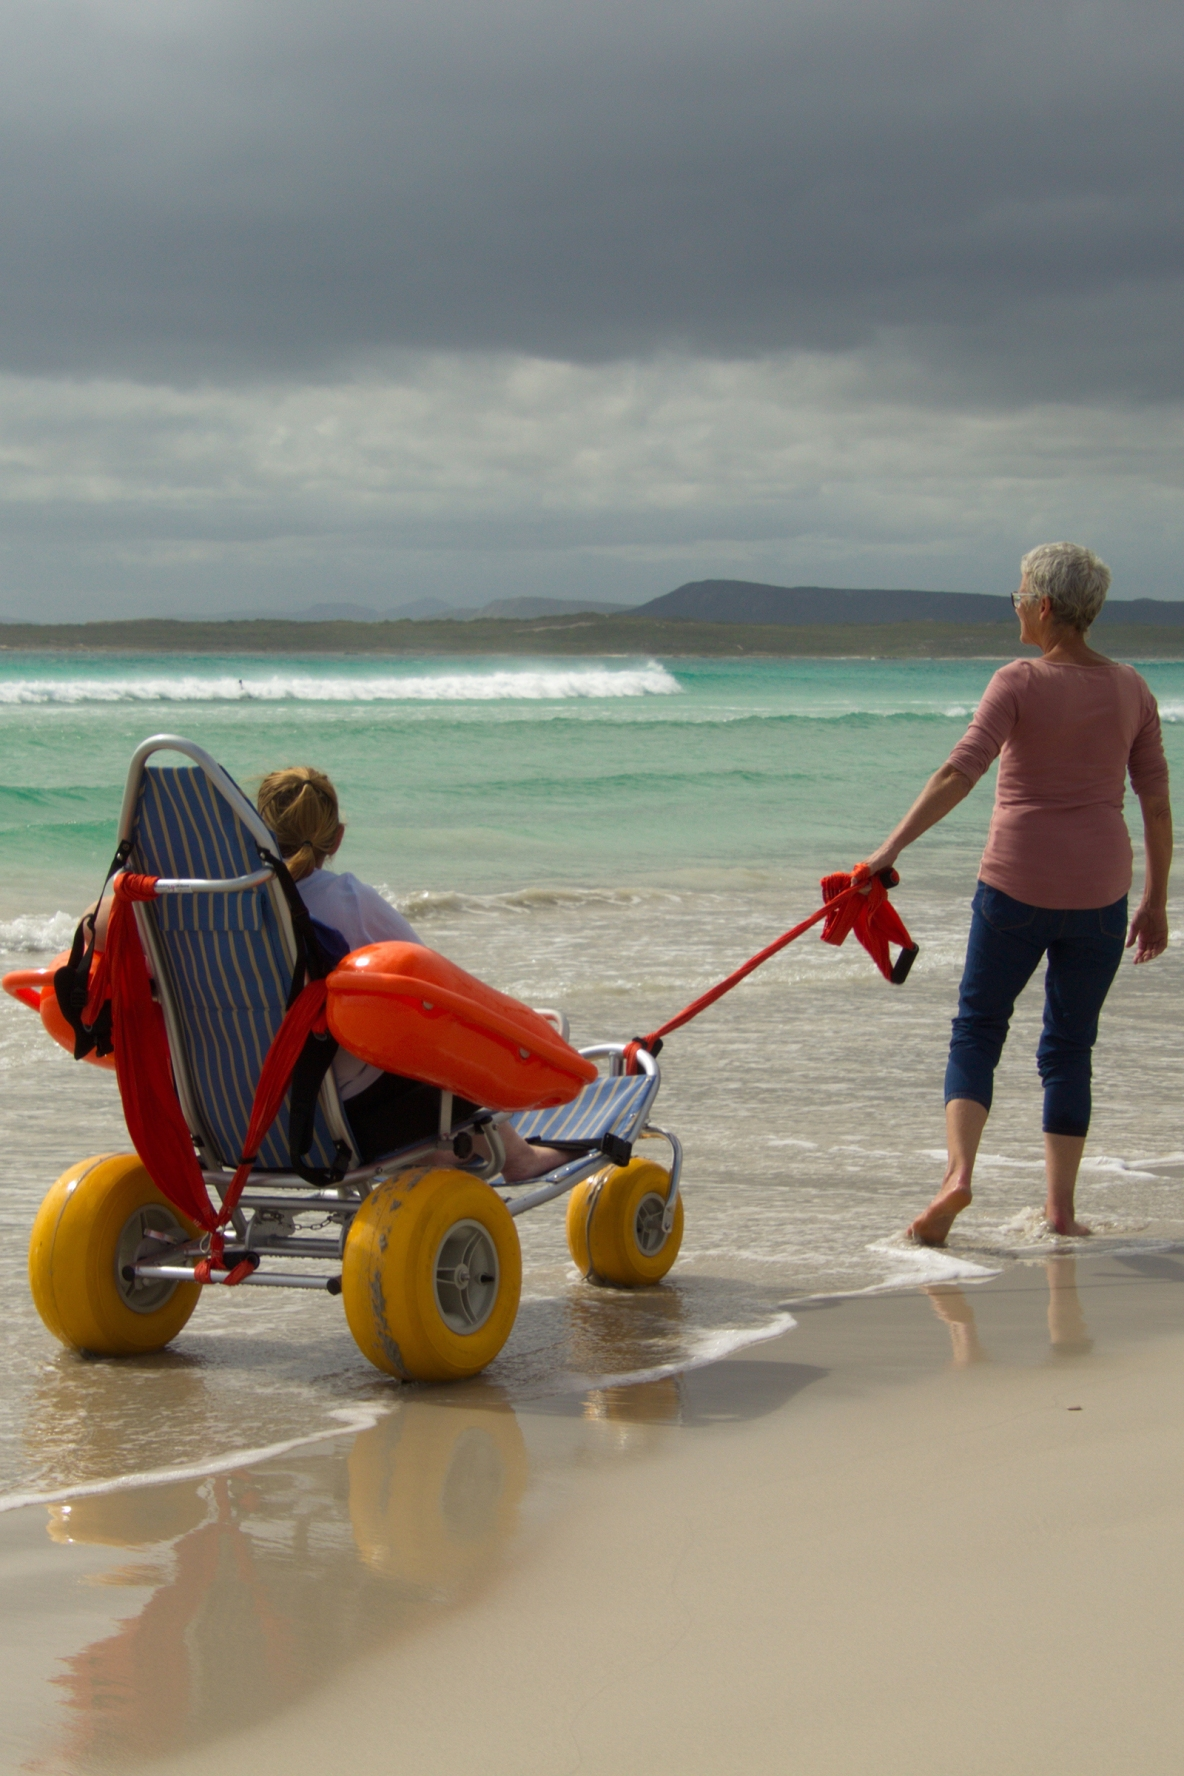 A guest taking a beach excursion in a specialized beach wheelchair.